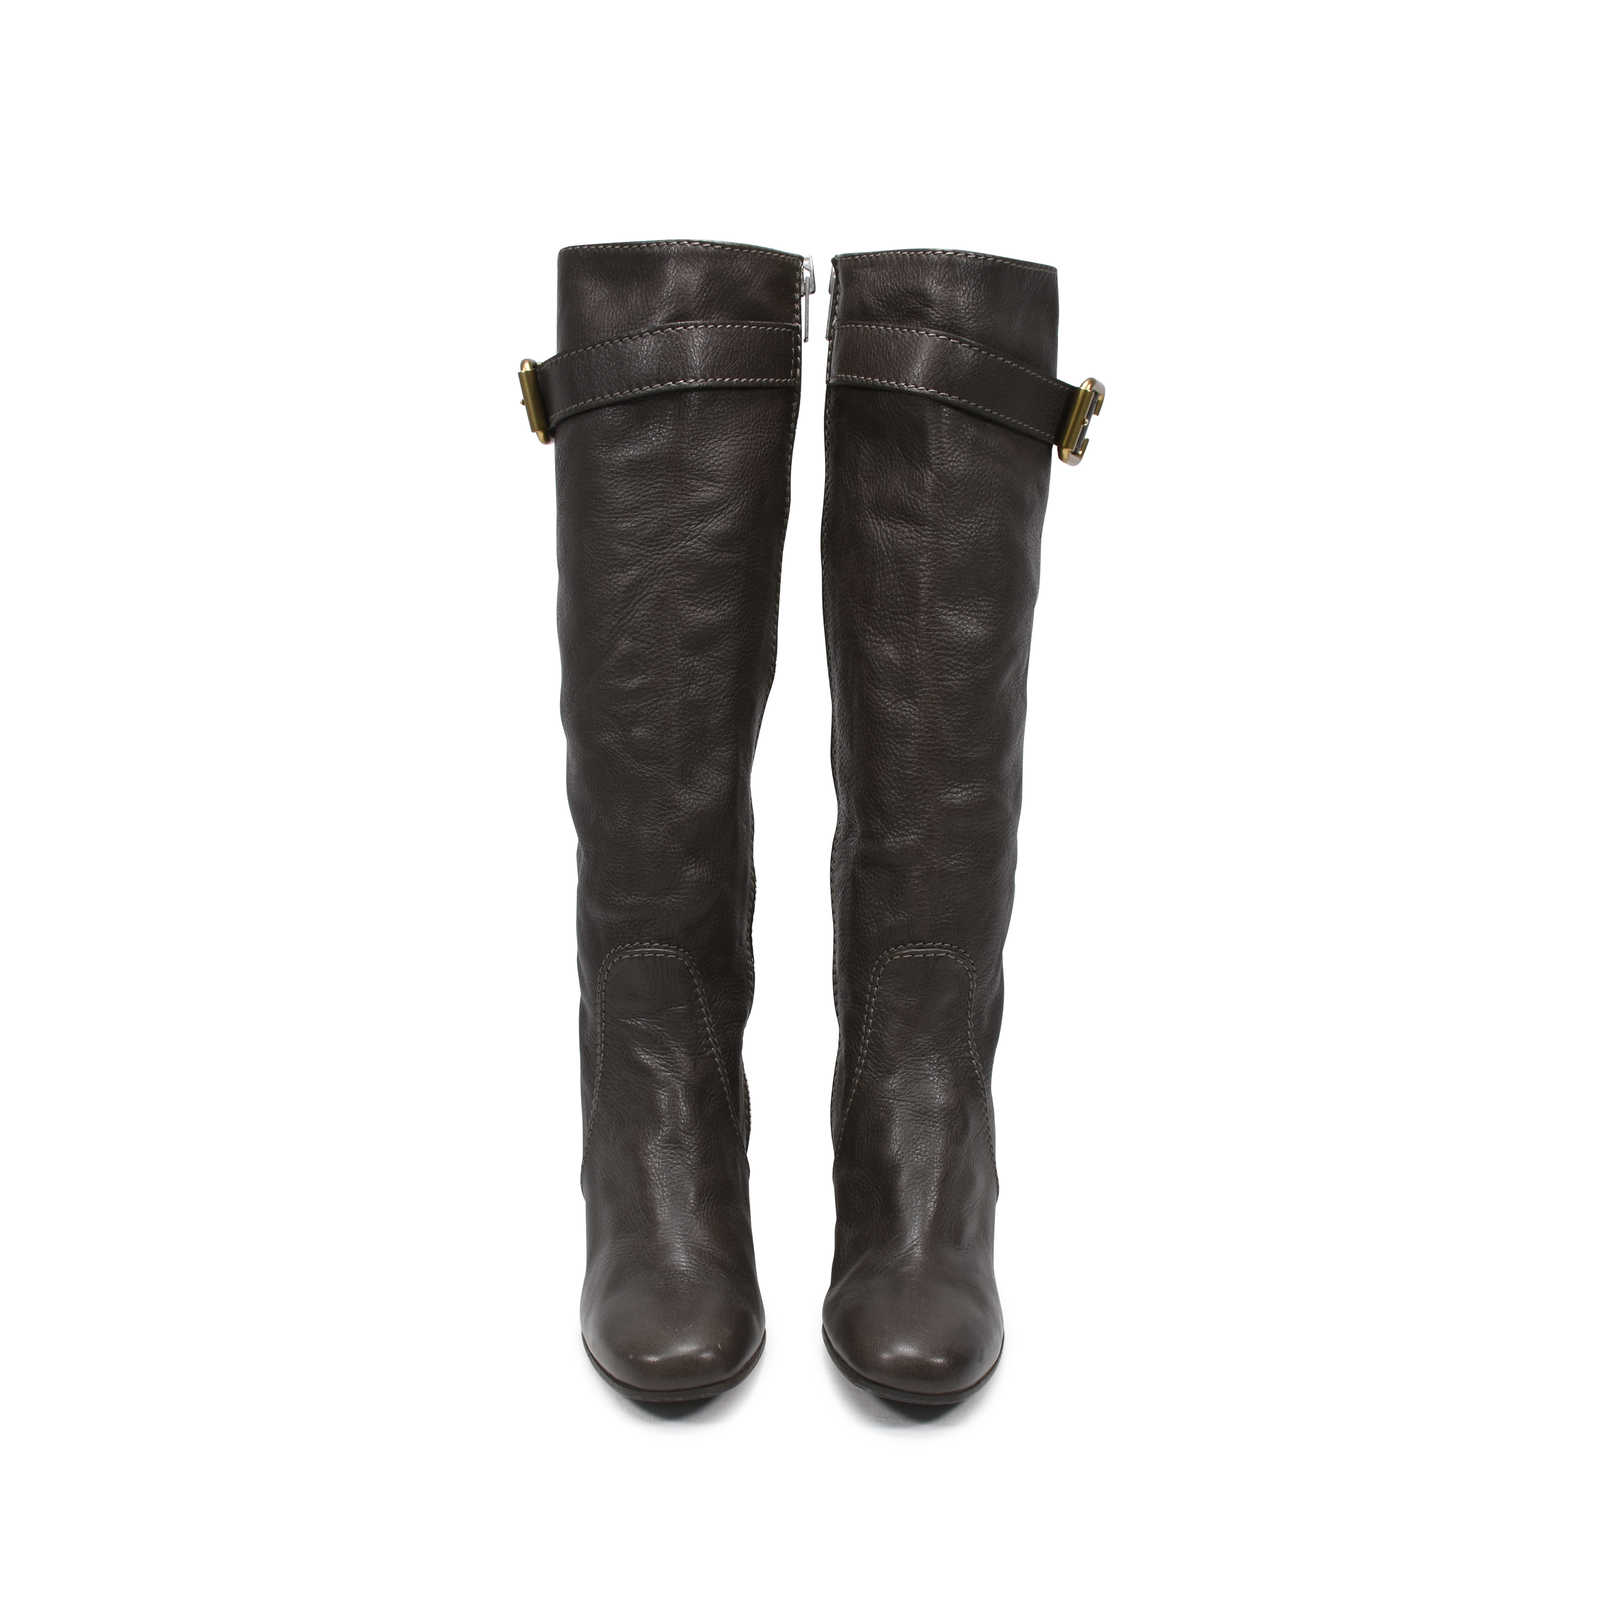 d572f189d4d Authentic Second Hand Chloé Knee-high Boots (PSS-369-00012) - THE ...